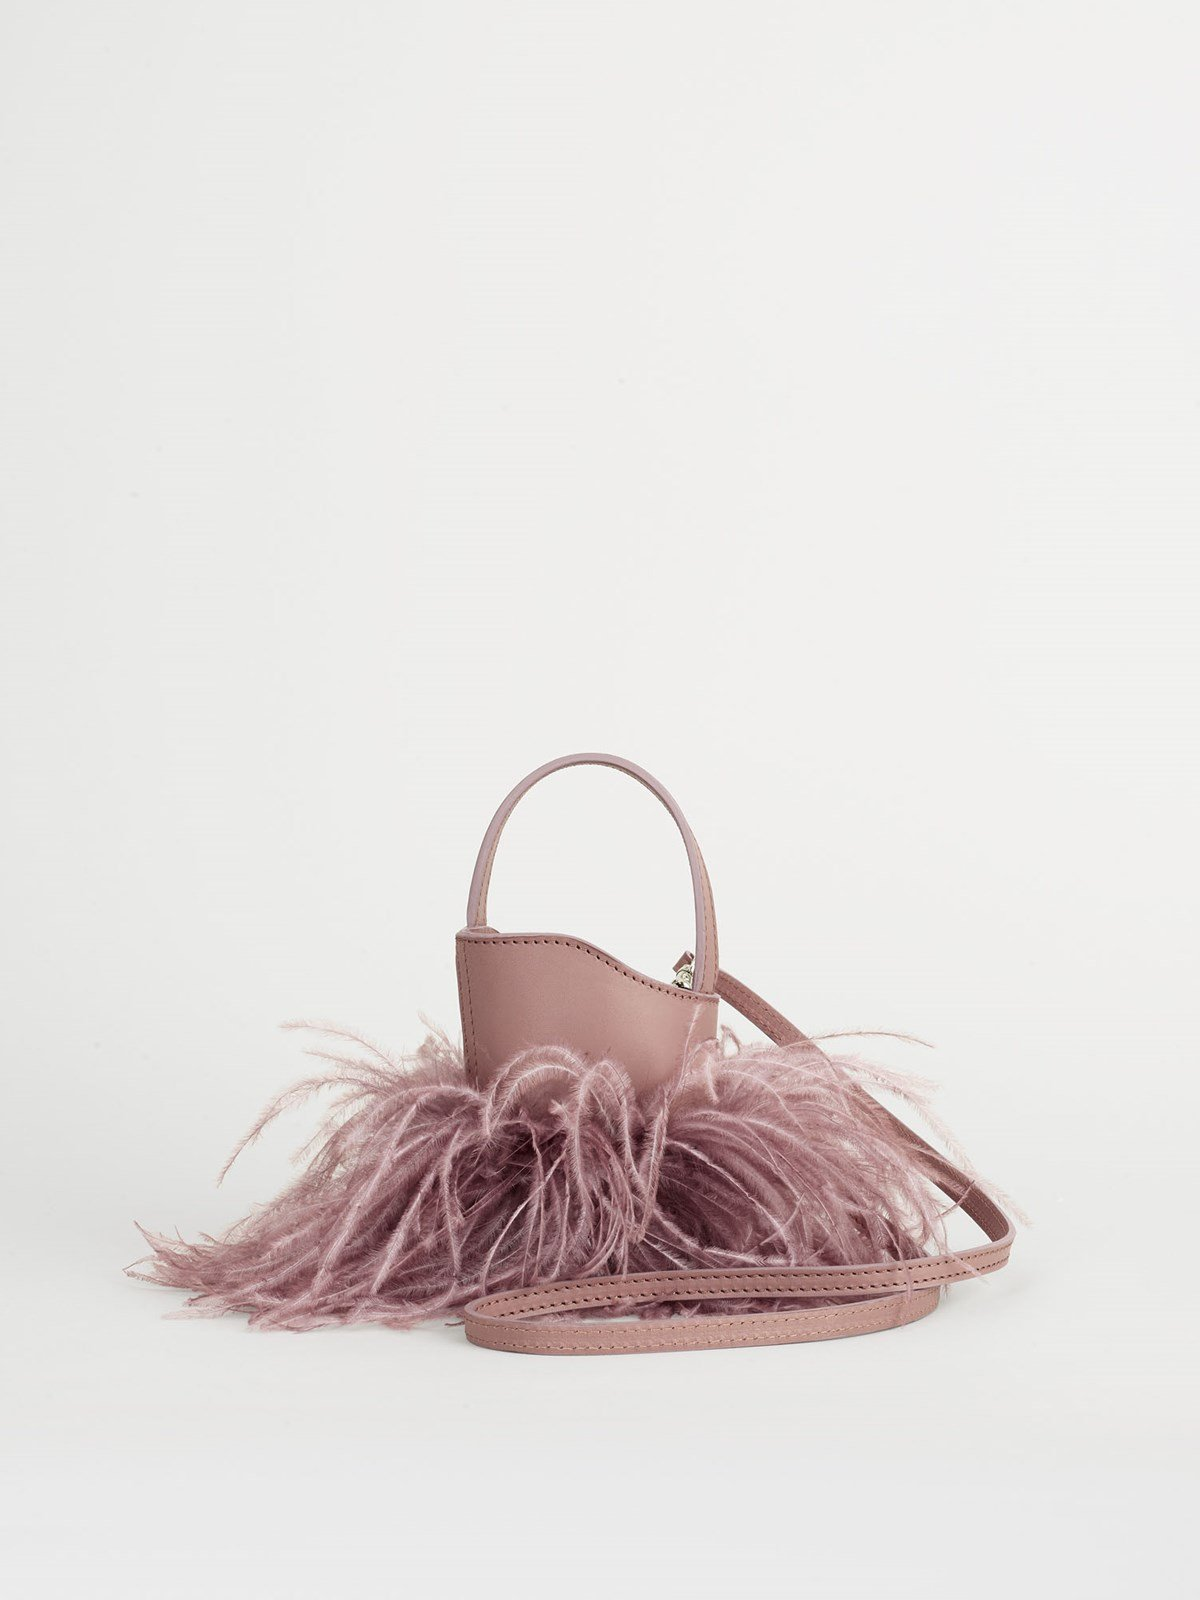 Lilliano Khaki Rose Mini bucket bag